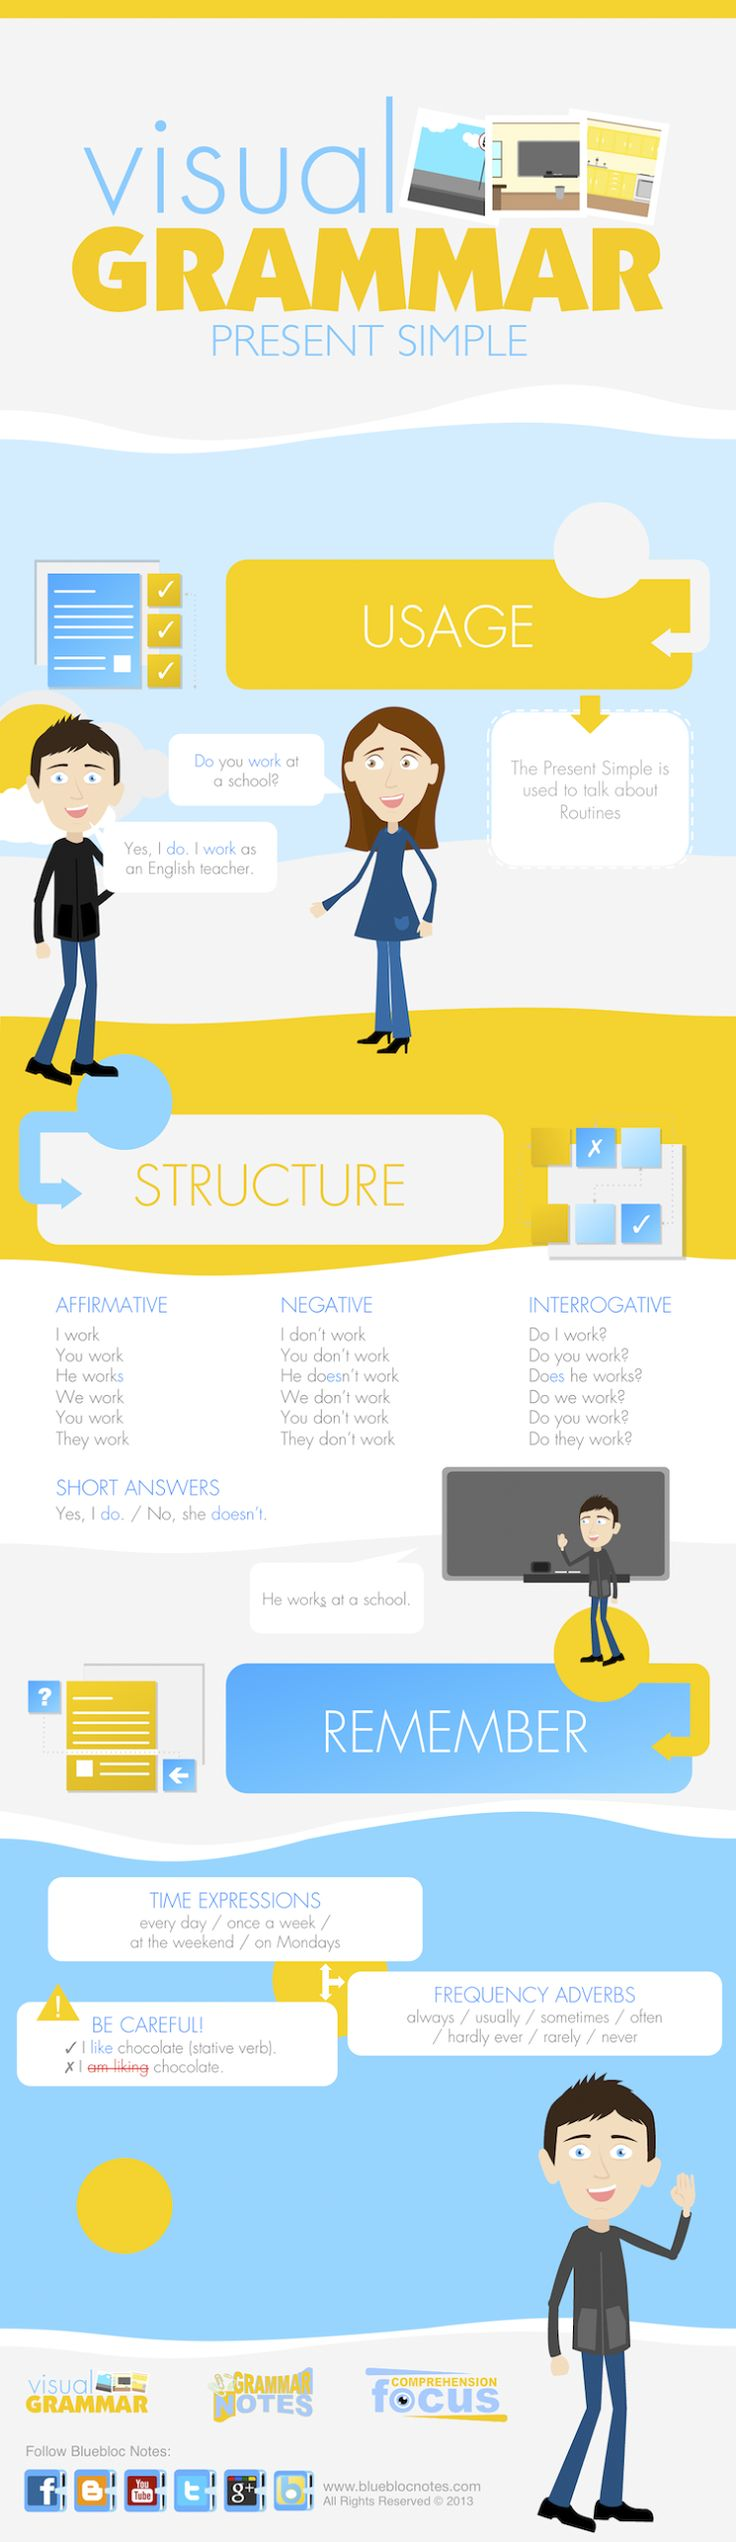 Infographic: Present Simple